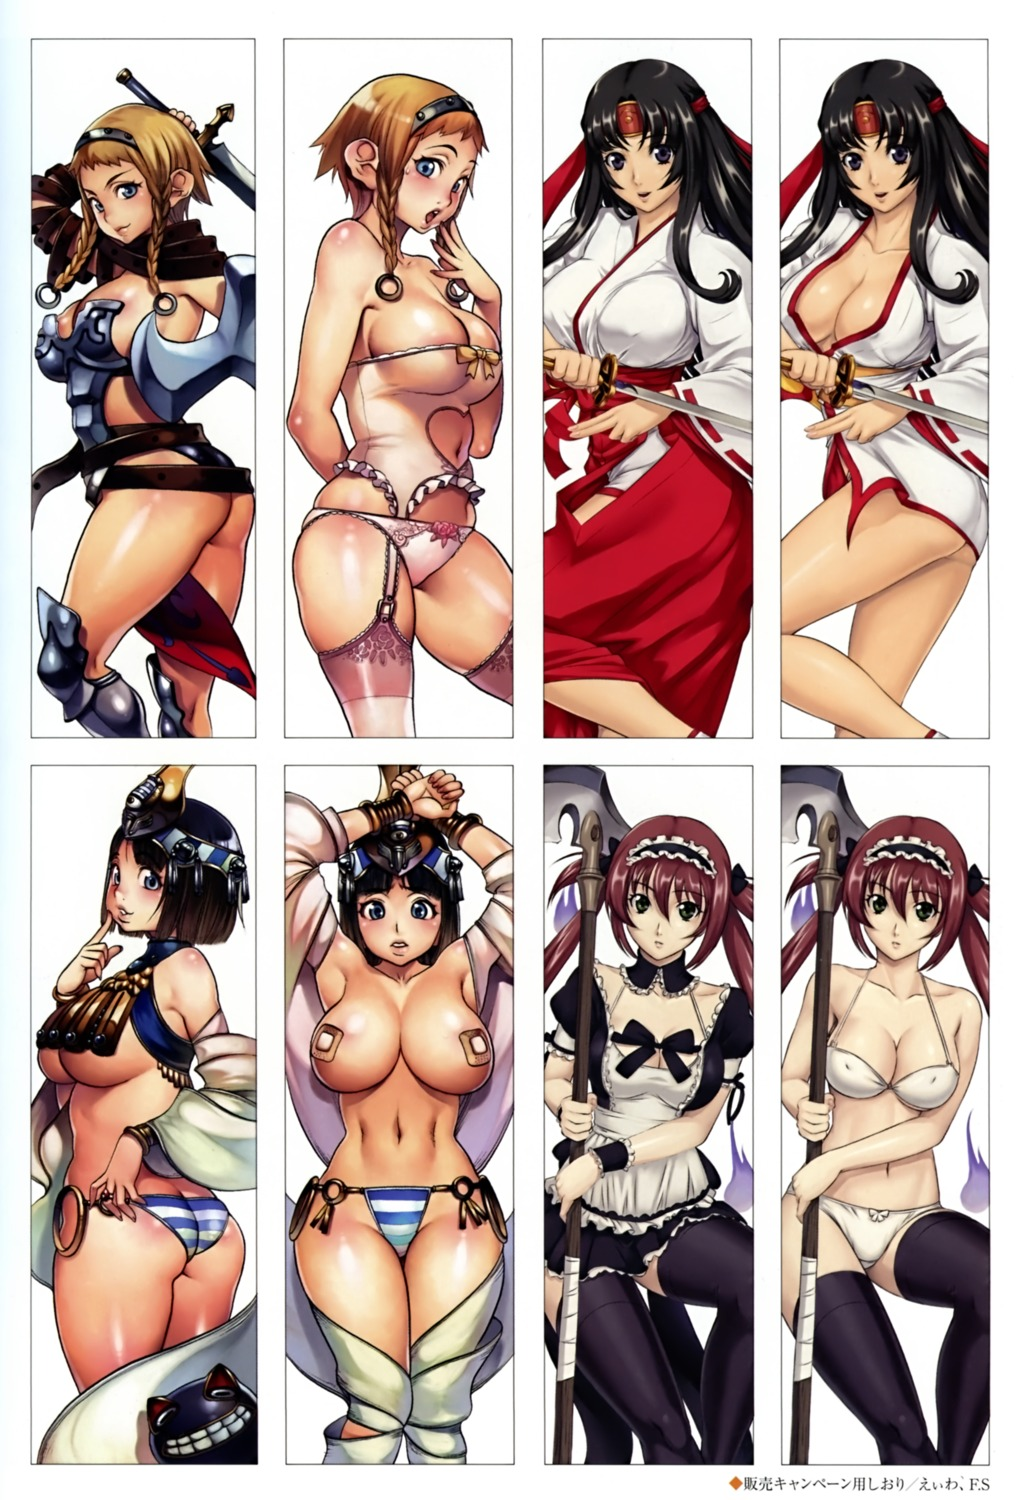 airi armor ass bra cleavage dakimakura dress eiwa erect_nipples f.s leina lingerie maid menace miko pantsu pasties queen's_blade setra shimapan stockings sword thighhighs tomoe